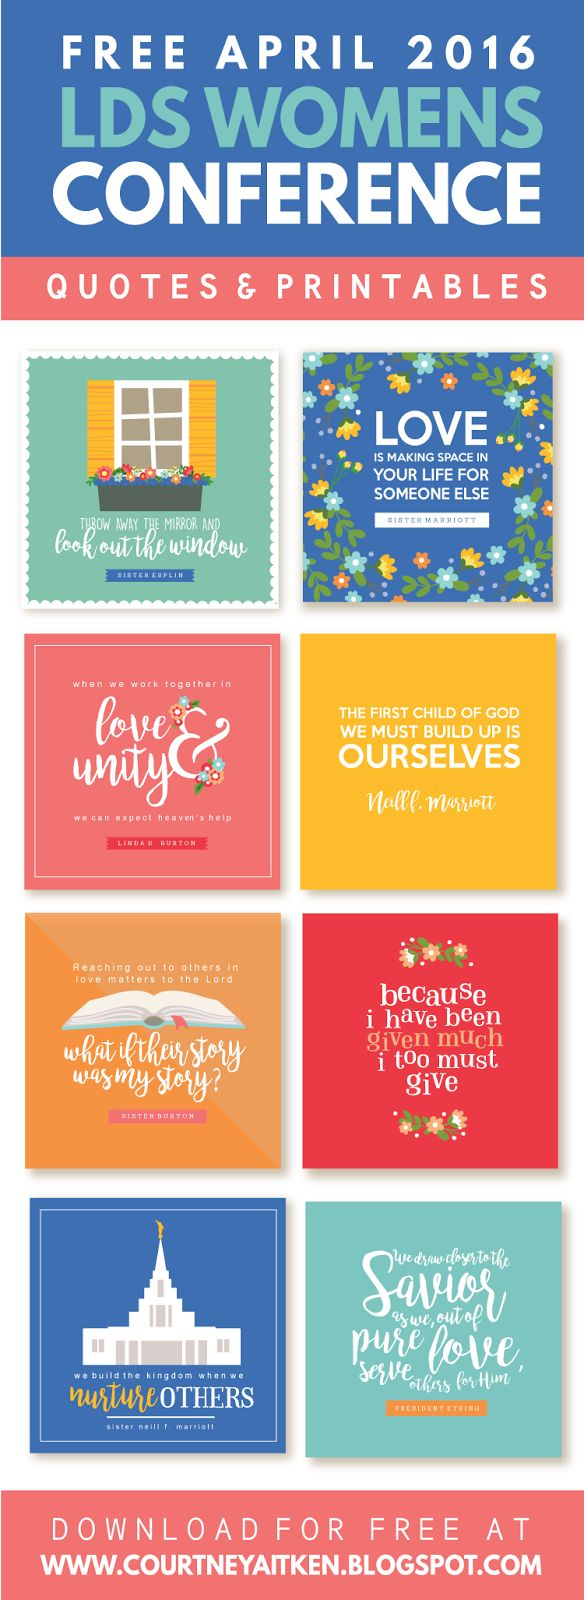 2016 LDS Women's Conference FREE Printable Quotes